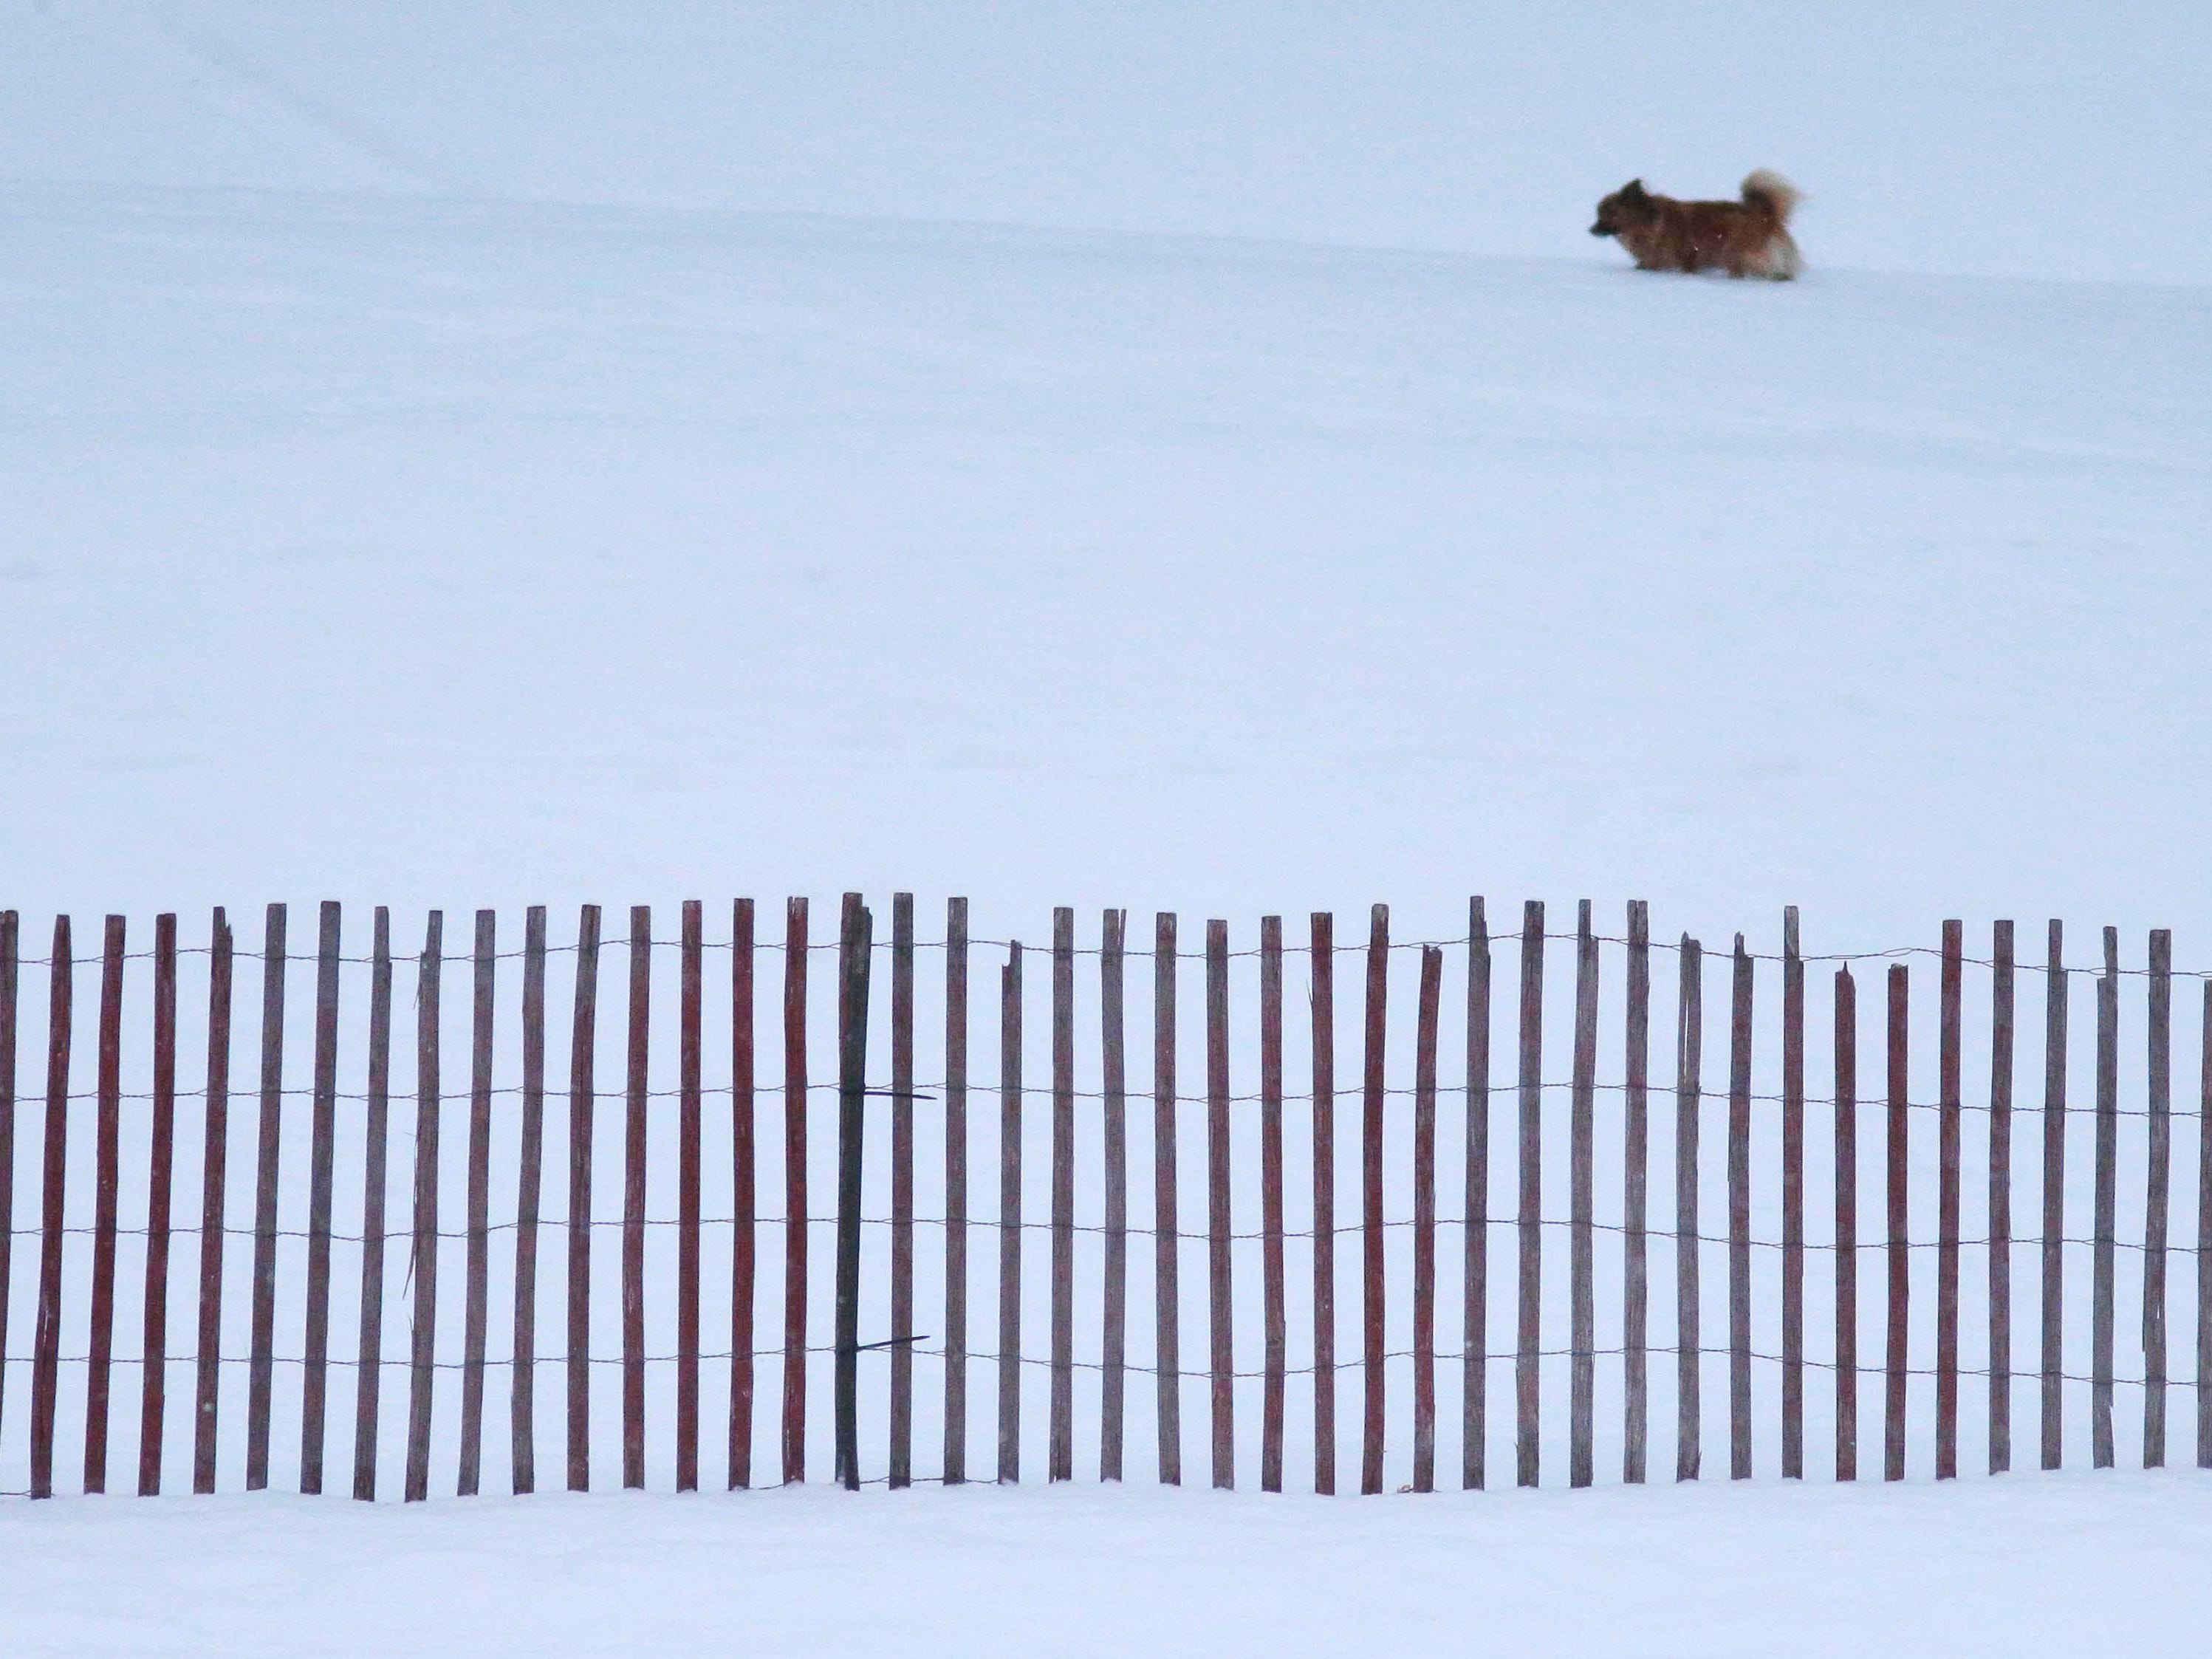 A small dog scampers in the snow near a snow fence at Kiwanis Park, Wednesday, January 2, 2019, in Sheboygan, Wis.